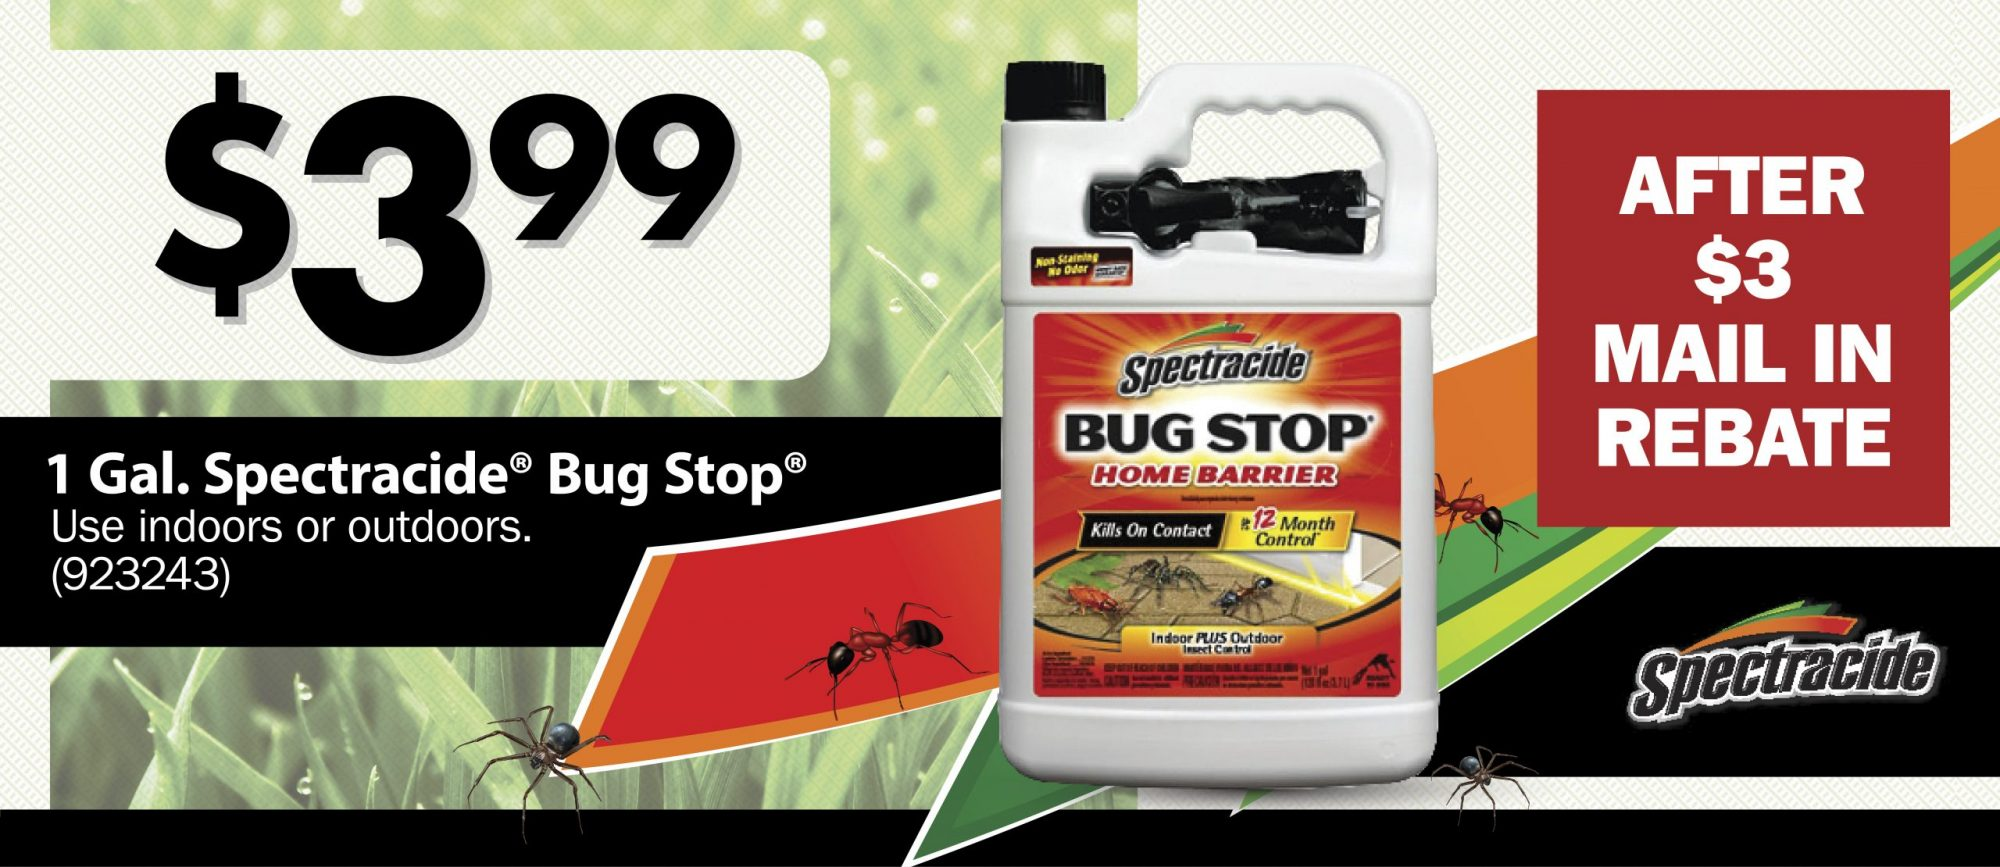 $3.99  After $3 Mail In Rebate 1 Gal. Spectracide® Bug Stop® (923243)